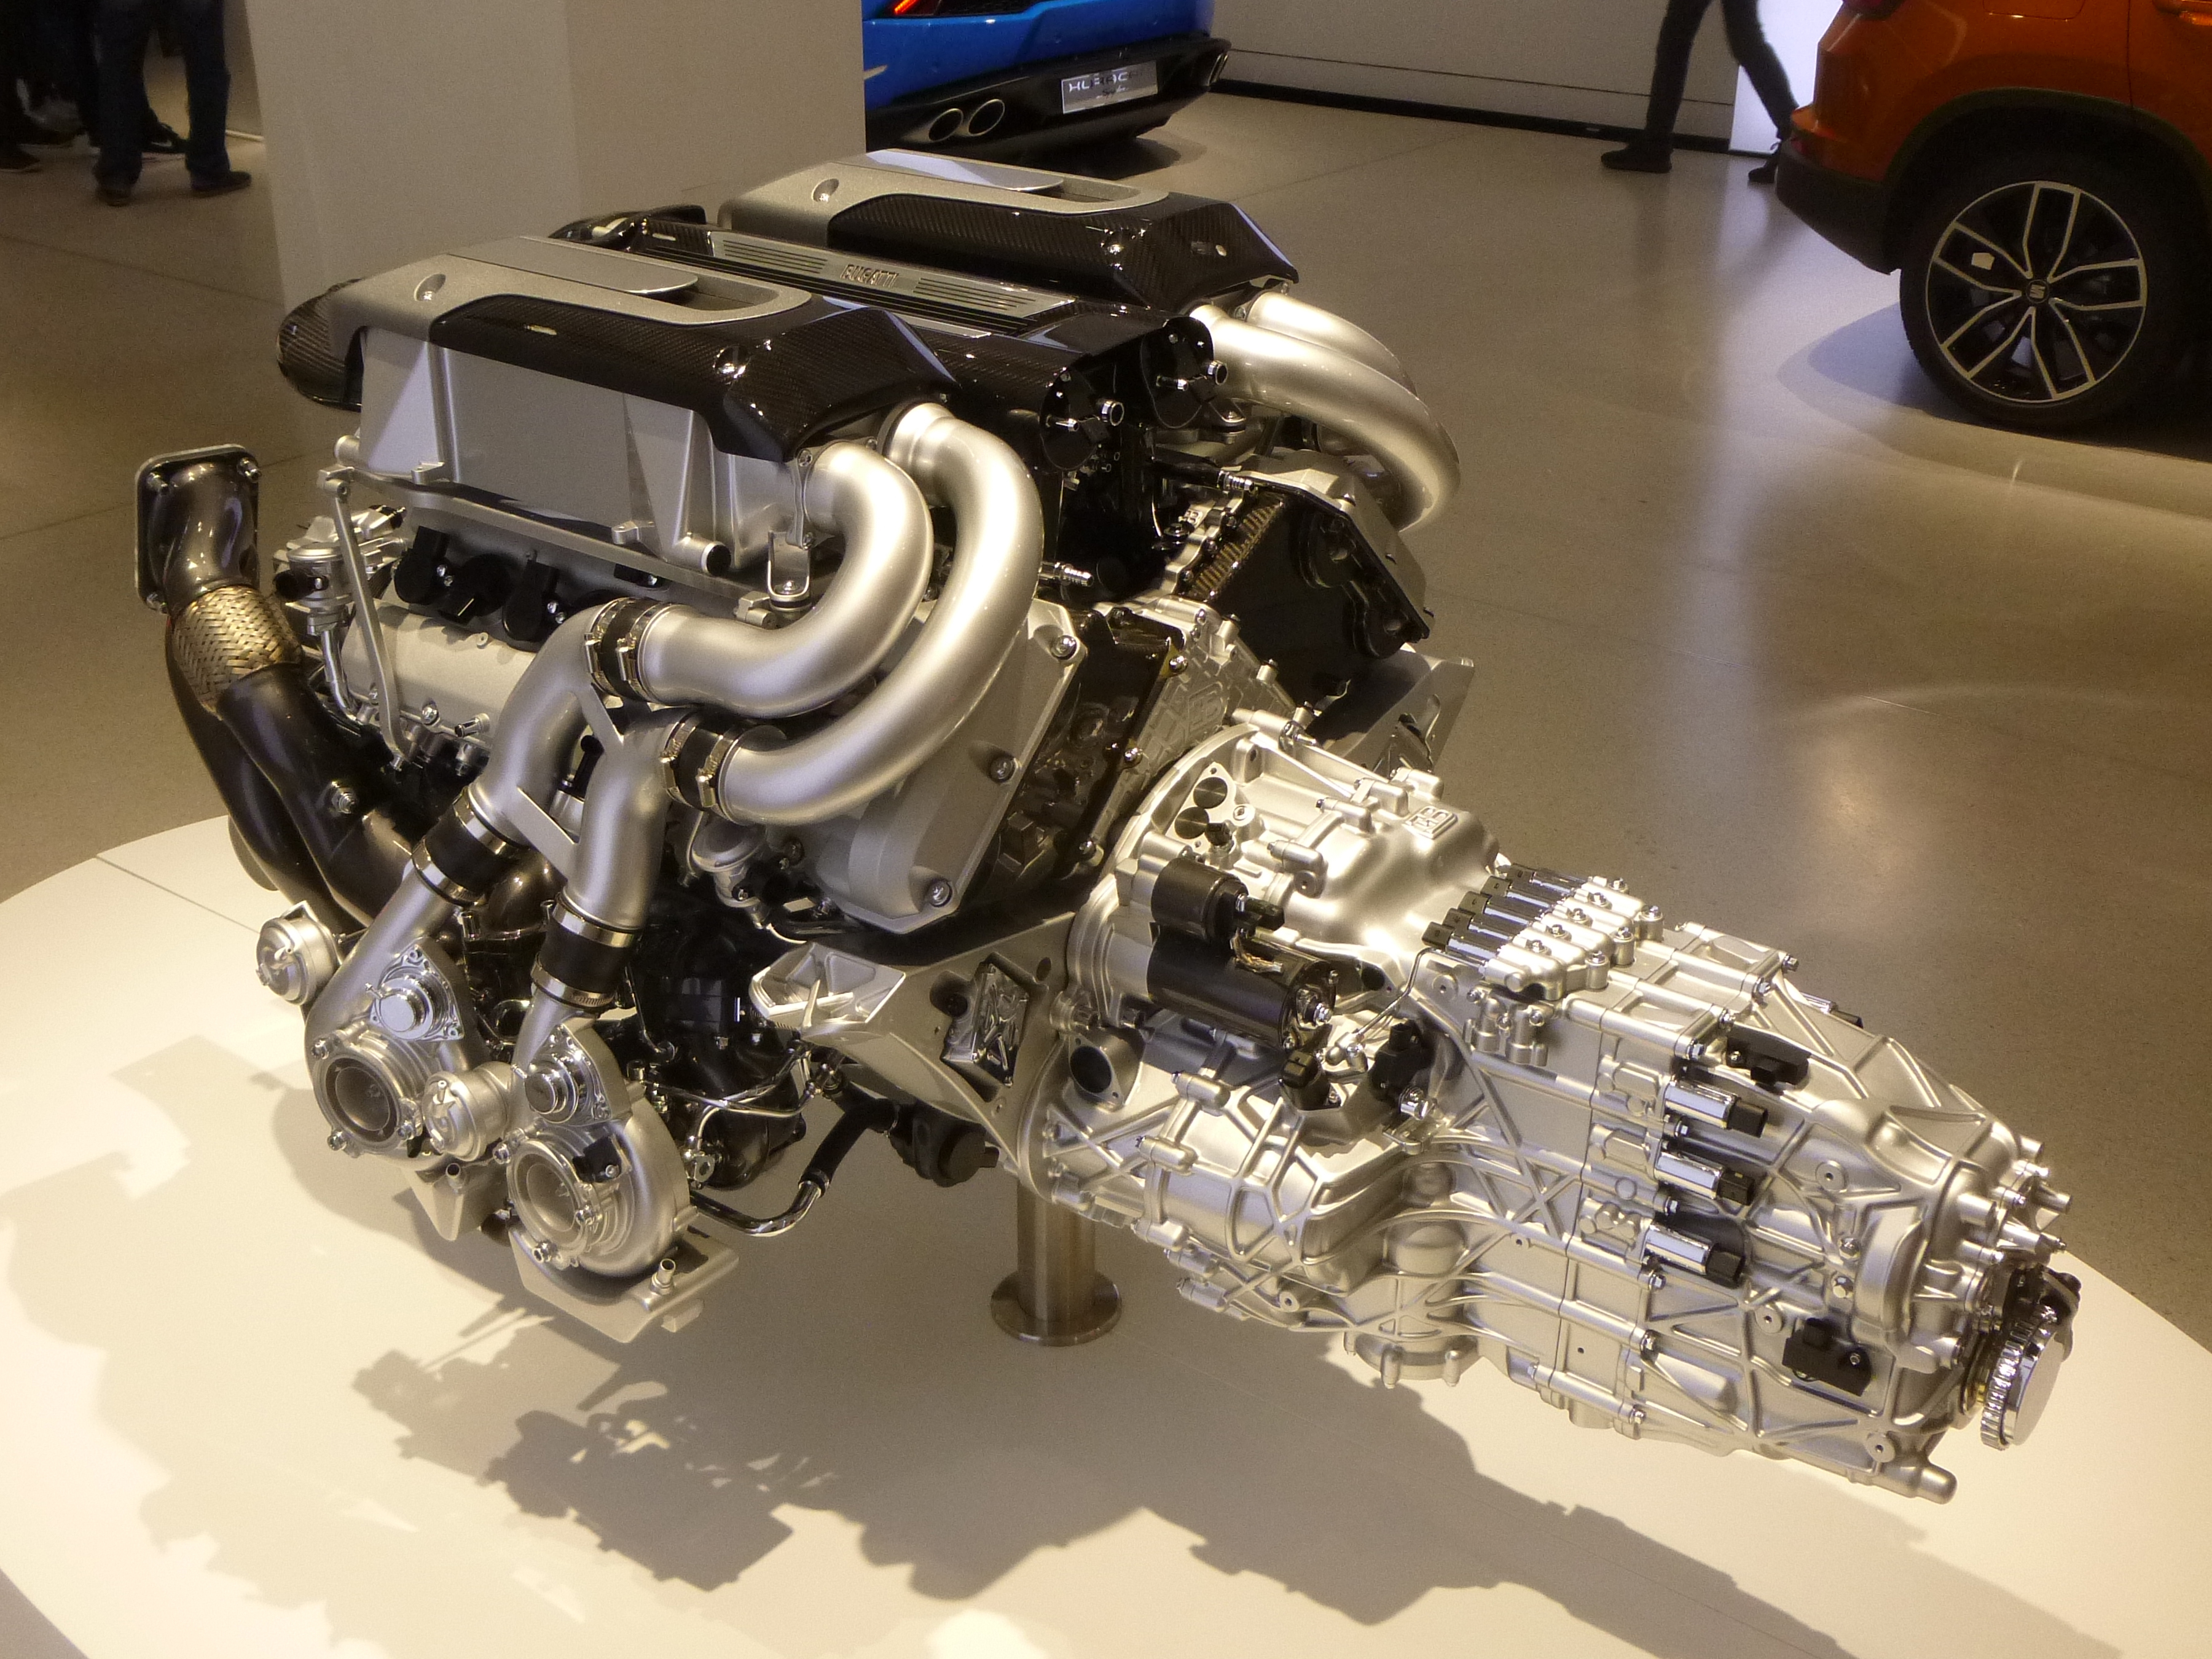 What Engine Is In The  Kawasaki